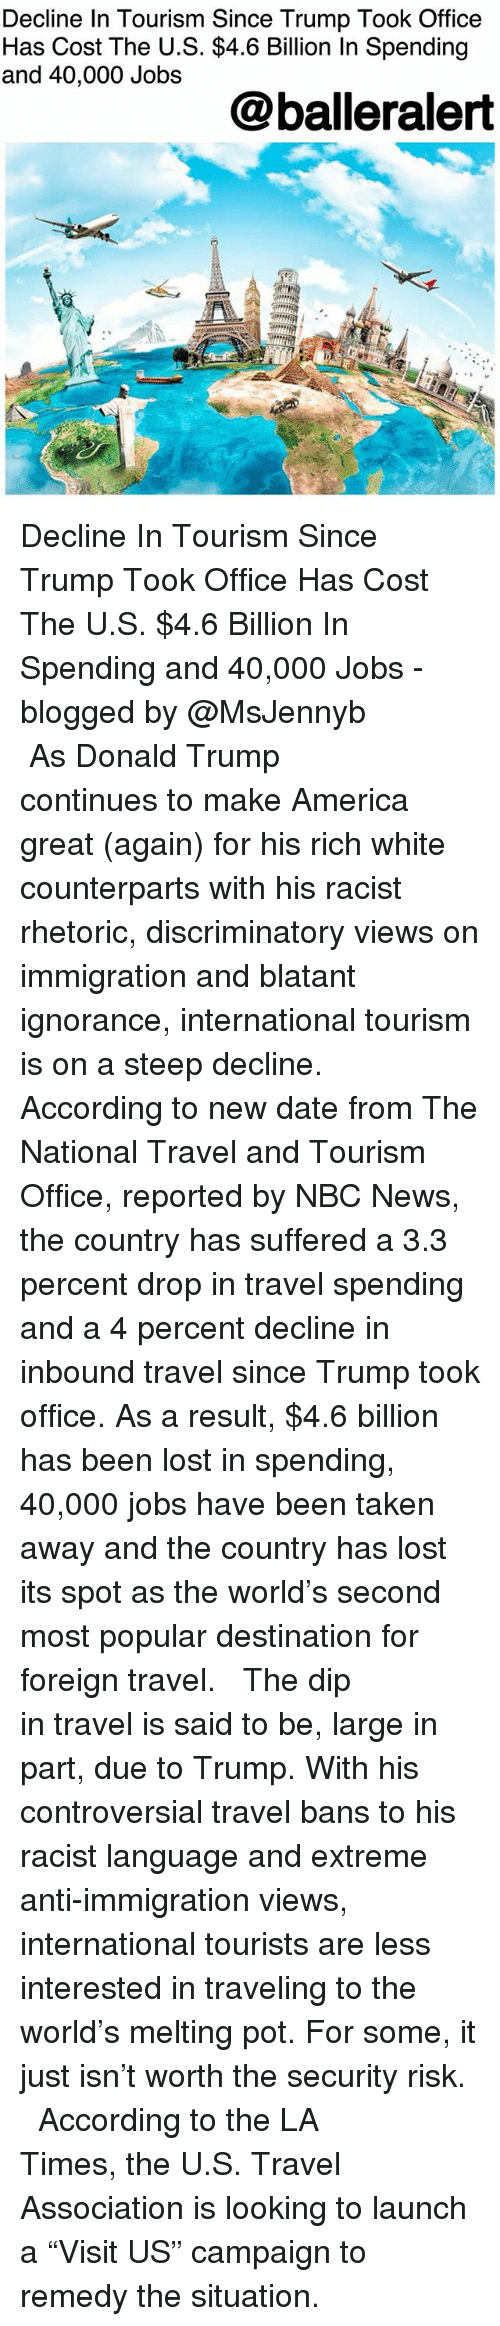 "America, Donald Trump, and Memes: Decline In Tourism Since Trump Took Office  Has Cost The U.S. $4.6 Billion In Spending  and 40,000 Jobs  @balleralert Decline In Tourism Since Trump Took Office Has Cost The U.S. $4.6 Billion In Spending and 40,000 Jobs - blogged by @MsJennyb ⠀⠀⠀⠀⠀⠀⠀ ⠀⠀⠀⠀⠀⠀⠀ As Donald Trump continues to make America great (again) for his rich white counterparts with his racist rhetoric, discriminatory views on immigration and blatant ignorance, international tourism is on a steep decline. ⠀⠀⠀⠀⠀⠀⠀ ⠀⠀⠀⠀⠀⠀⠀ According to new date from The National Travel and Tourism Office, reported by NBC News, the country has suffered a 3.3 percent drop in travel spending and a 4 percent decline in inbound travel since Trump took office. As a result, $4.6 billion has been lost in spending, 40,000 jobs have been taken away and the country has lost its spot as the world's second most popular destination for foreign travel. ⠀⠀⠀⠀⠀⠀⠀ ⠀⠀⠀⠀⠀⠀⠀ The dip in travel is said to be, large in part, due to Trump. With his controversial travel bans to his racist language and extreme anti-immigration views, international tourists are less interested in traveling to the world's melting pot. For some, it just isn't worth the security risk. ⠀⠀⠀⠀⠀⠀⠀ ⠀⠀⠀⠀⠀⠀⠀ According to the LA Times, the U.S. Travel Association is looking to launch a ""Visit US"" campaign to remedy the situation."